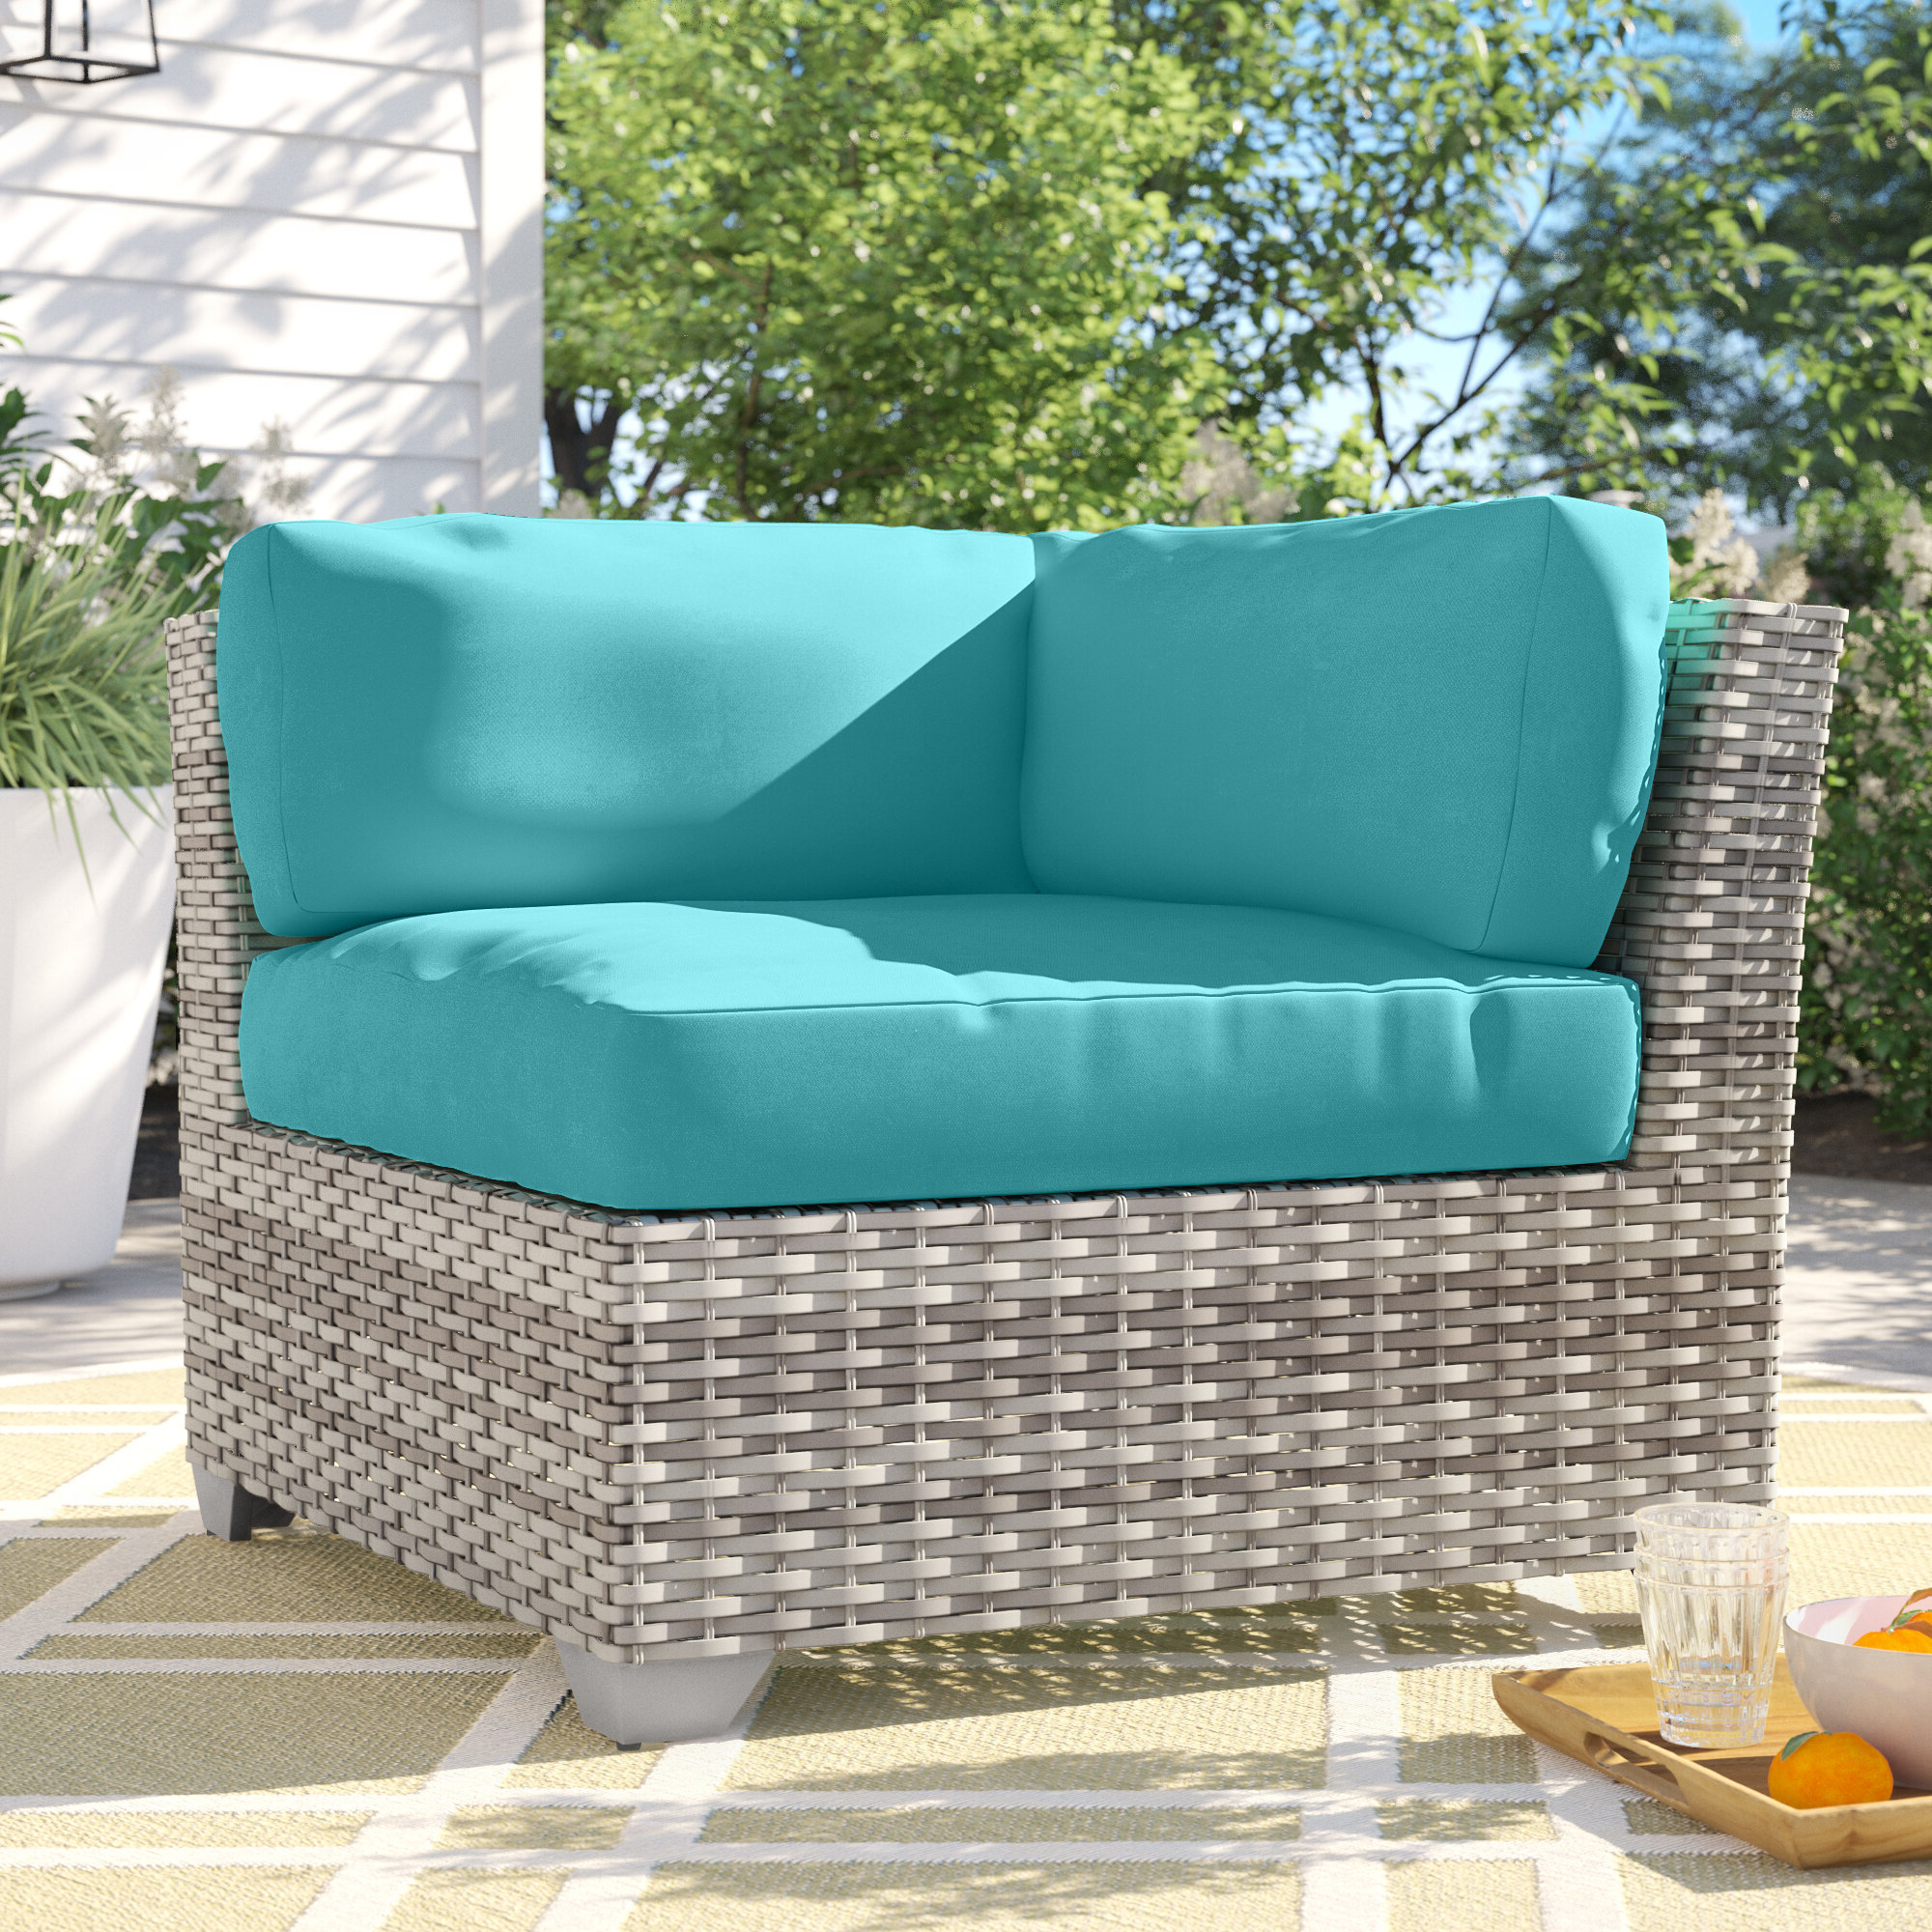 Most Popular Falmouth Patio Sofas With Cushions Pertaining To Falmouth Corner Patio Chair With Cushions (View 17 of 20)